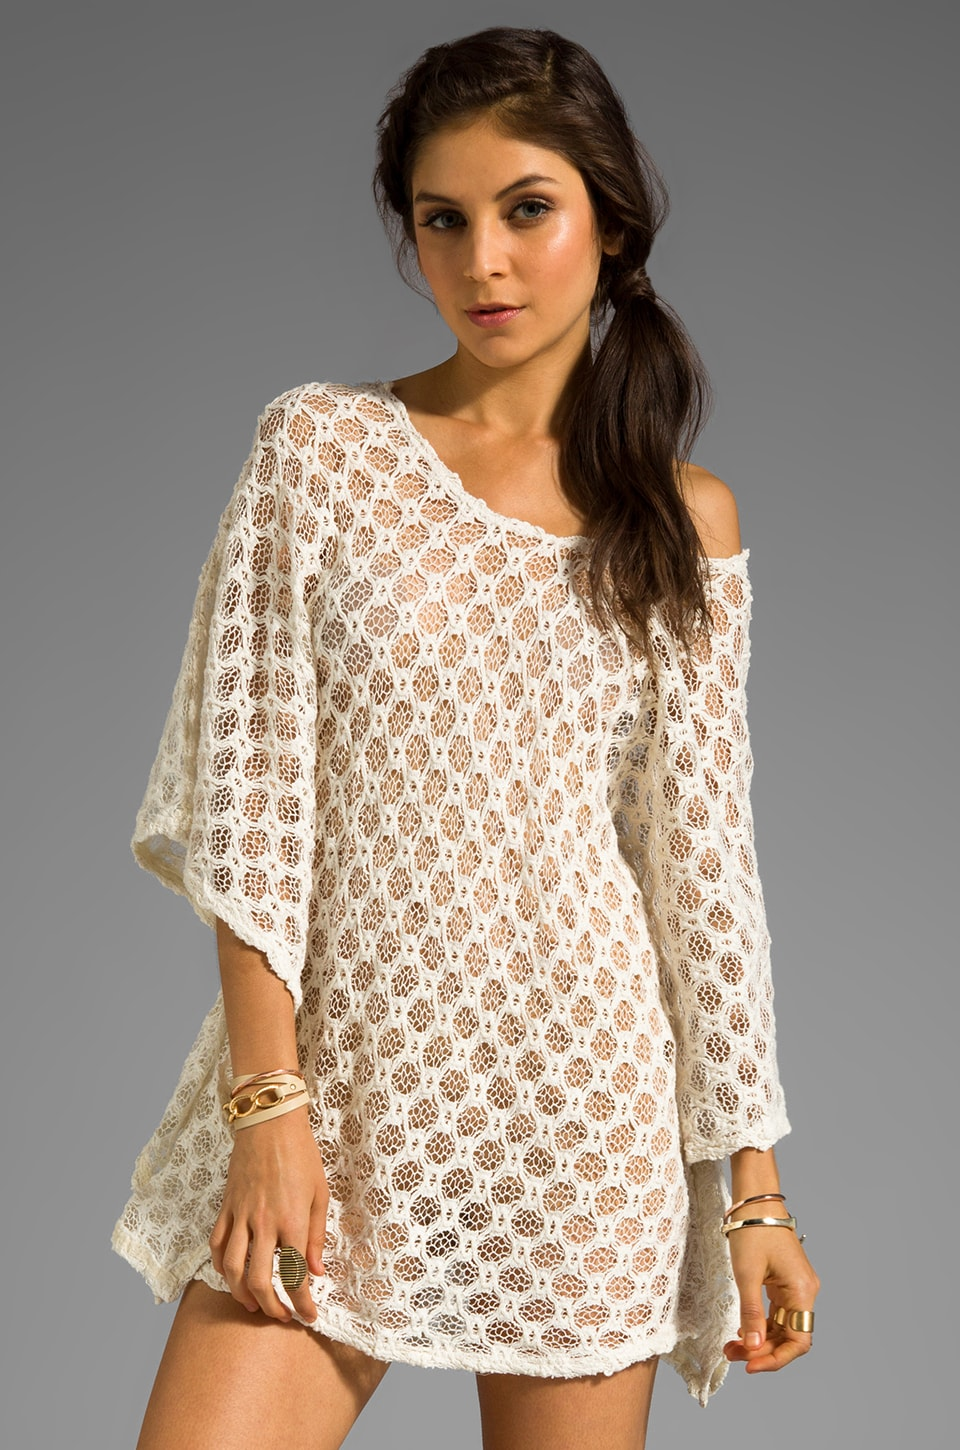 RVCA Ifni Tunic in Vintage White